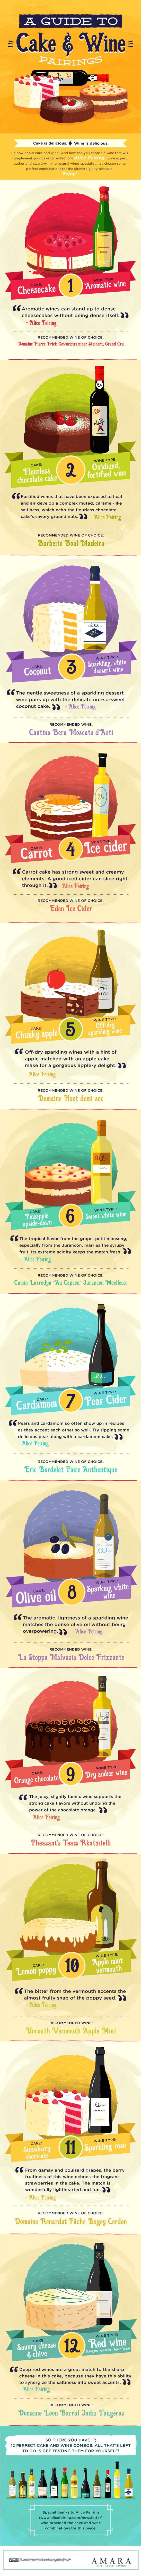 A Guide To Cake and Wine Pairings